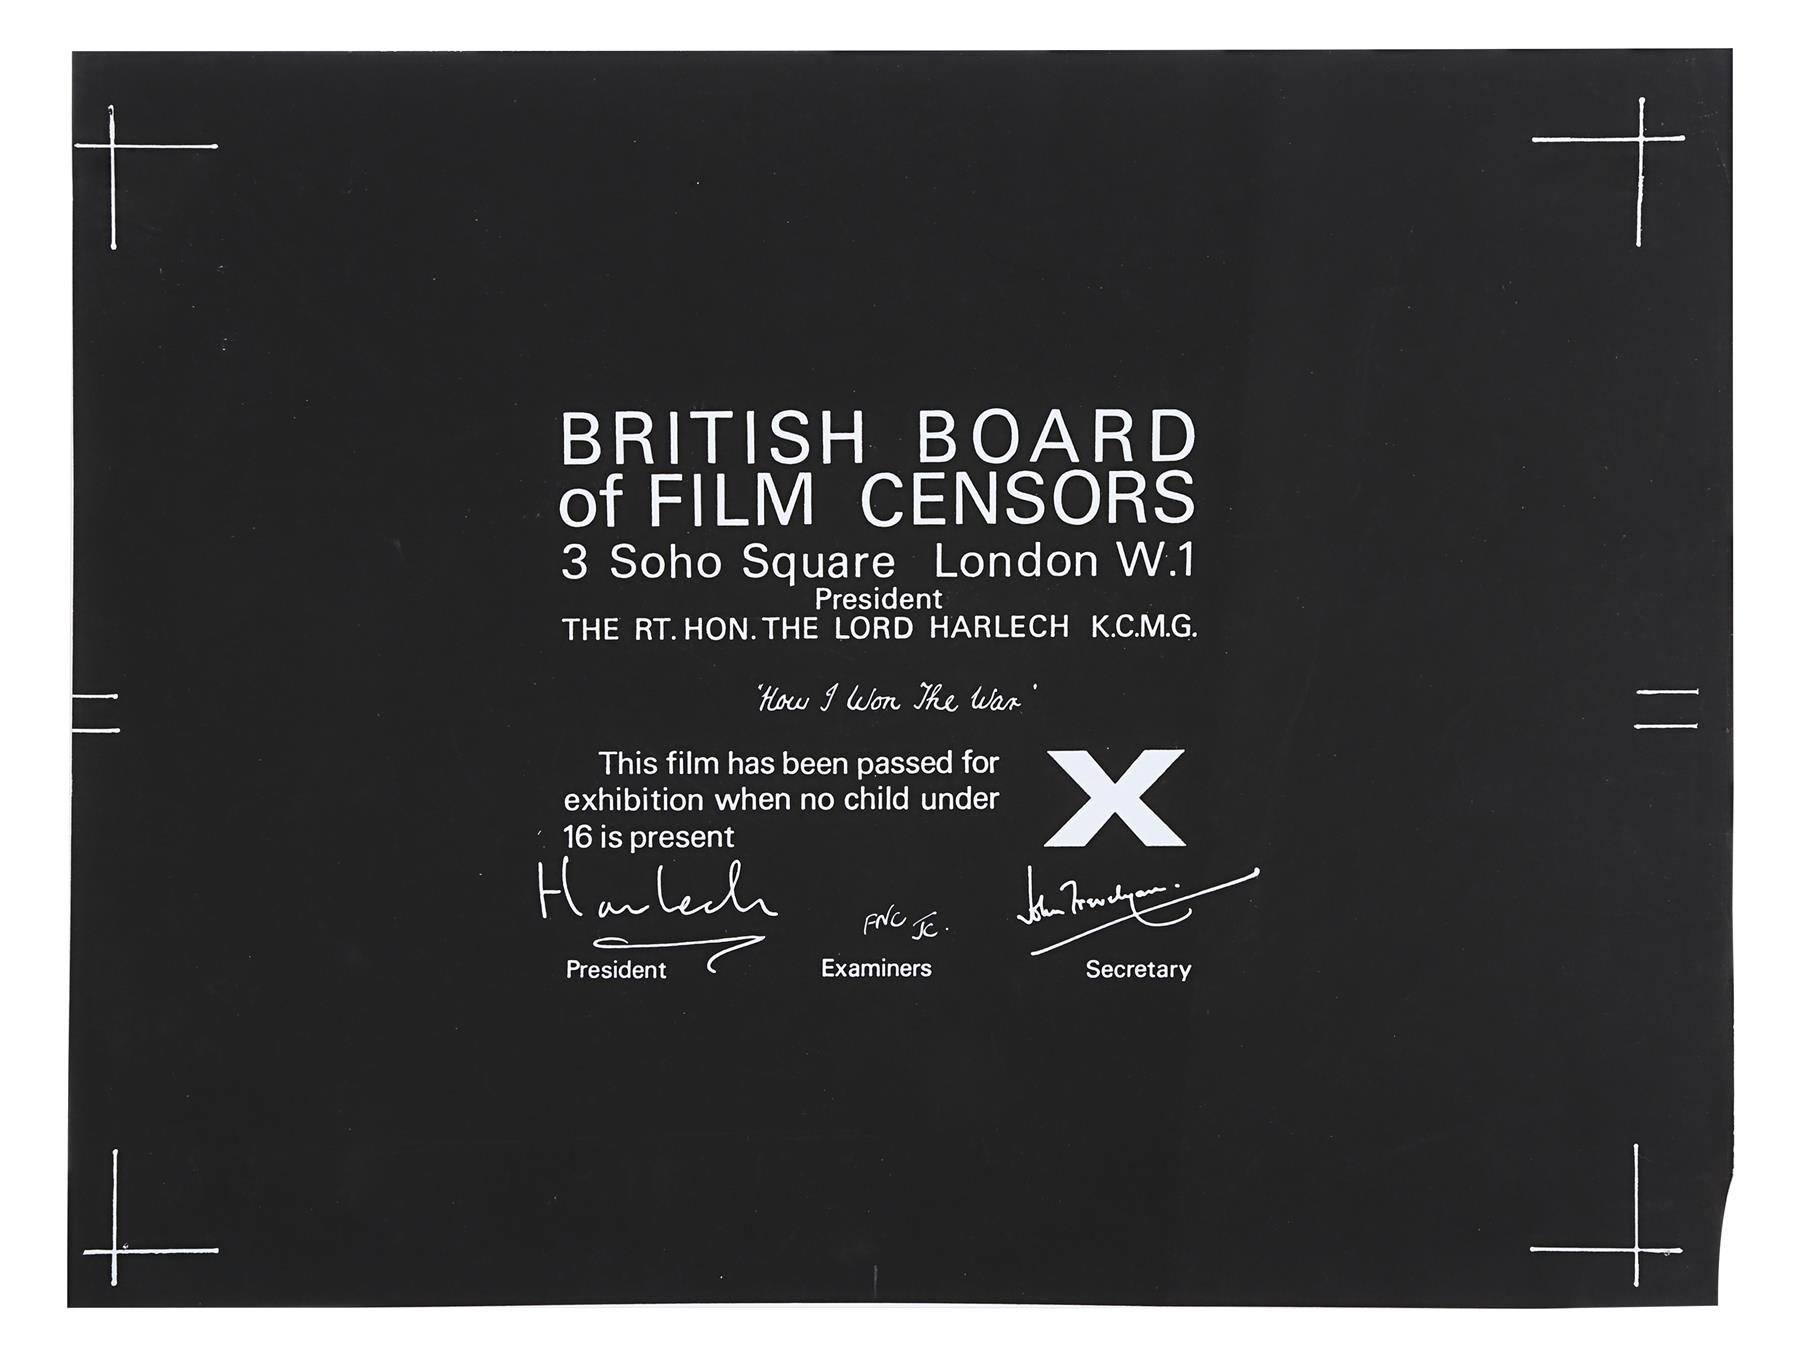 VARIOUS PRODUCTIONS - BBFC Certificates of British Classics - Image 3 of 6